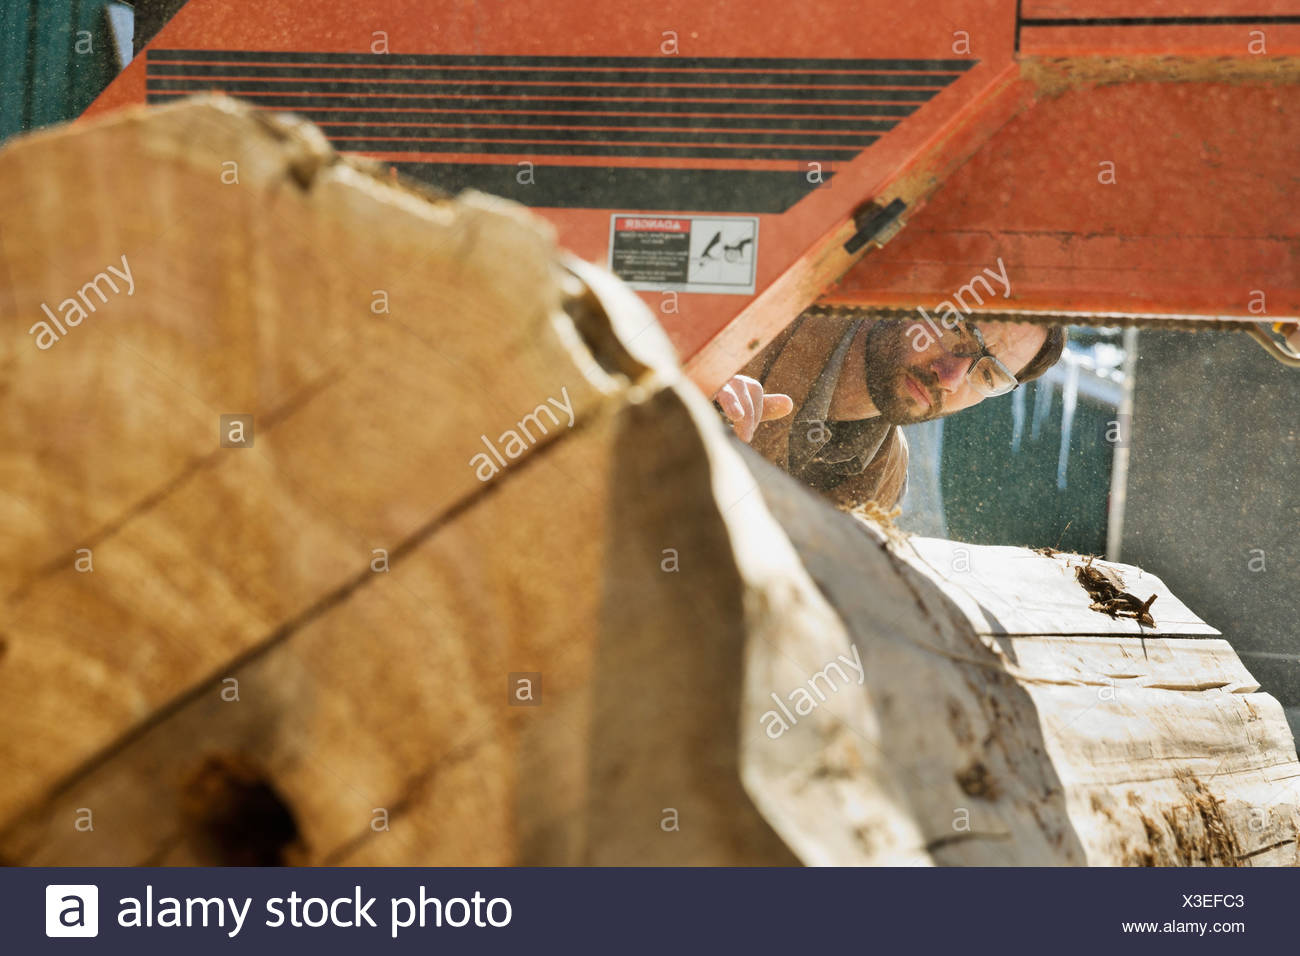 Woodworker looking at large log going through band saw Stock Photo